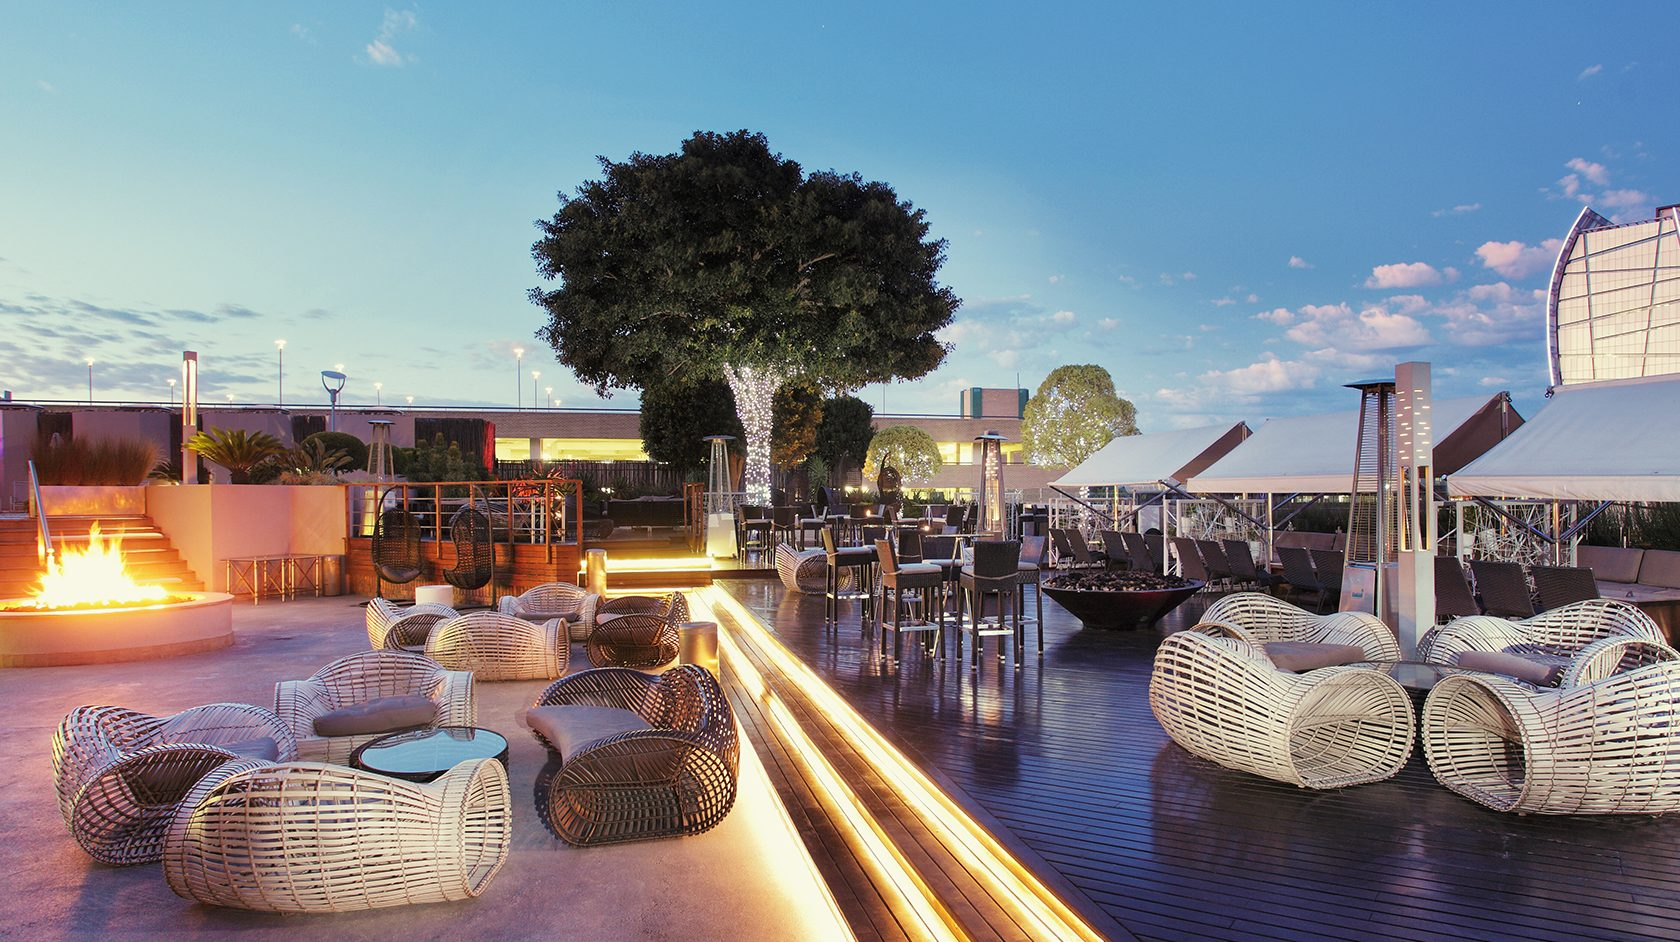 San deck the best place for sandton sundowners for Sundecks designs